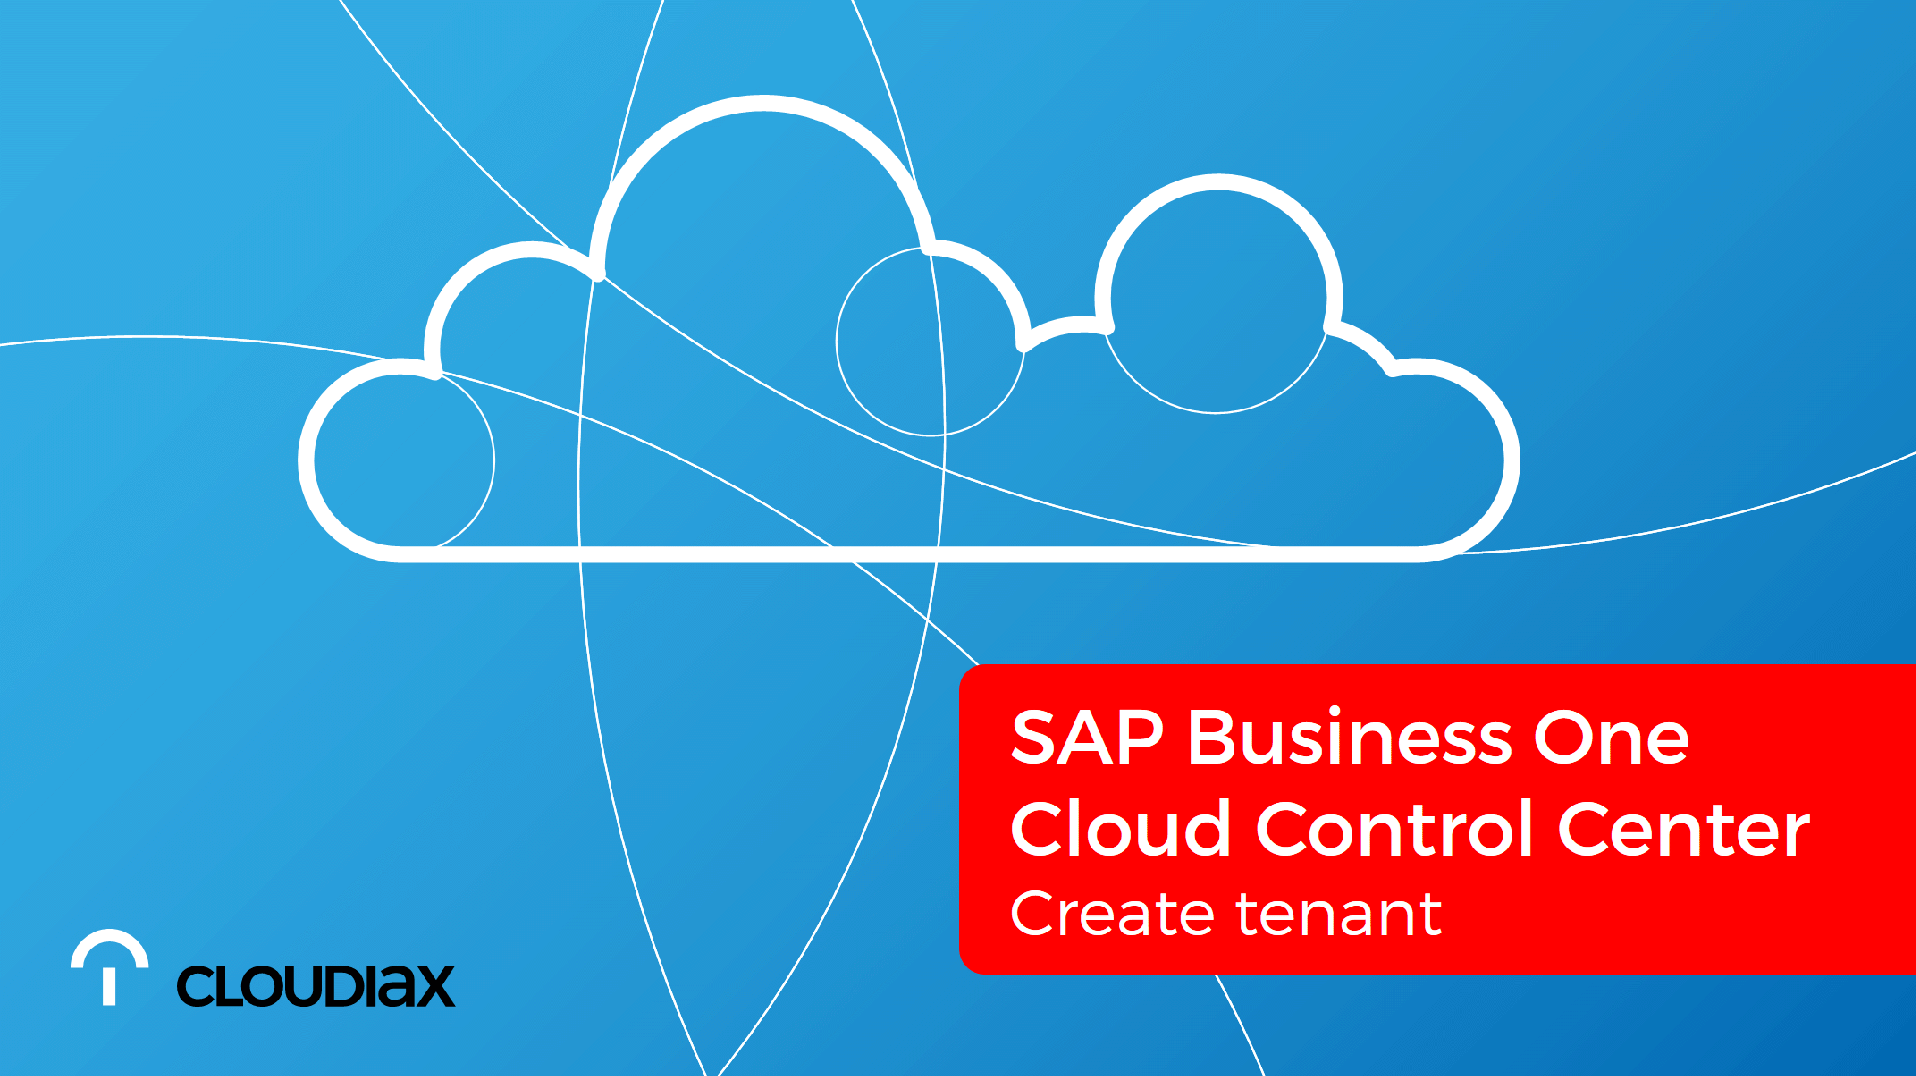 SAP Business One Cloud Control Center - Create Tenant